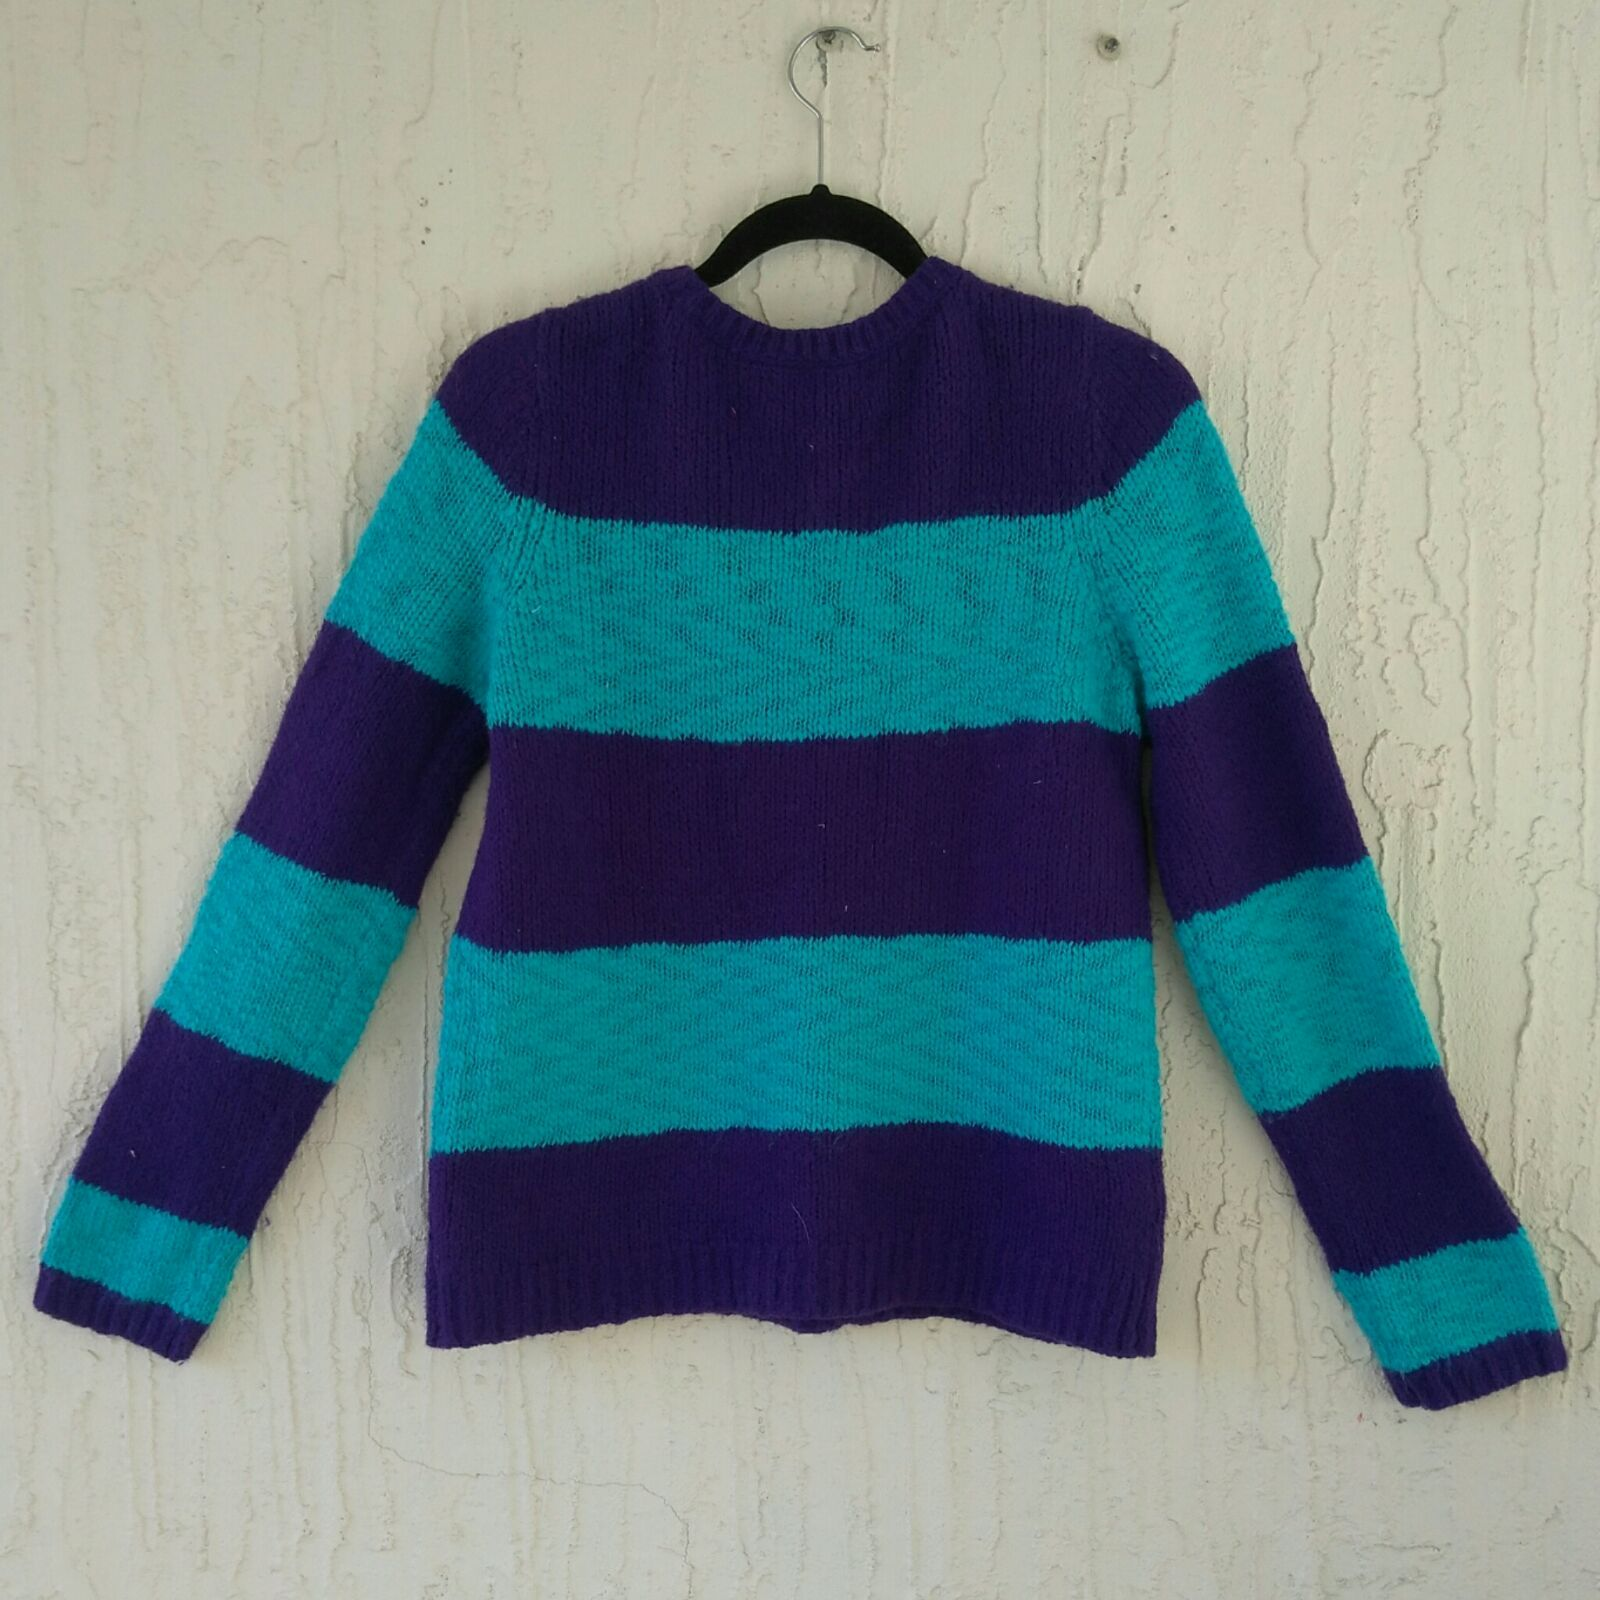 Blue Purple Striped Knit Sweater Size L - Mercari: BUY & SELL ...